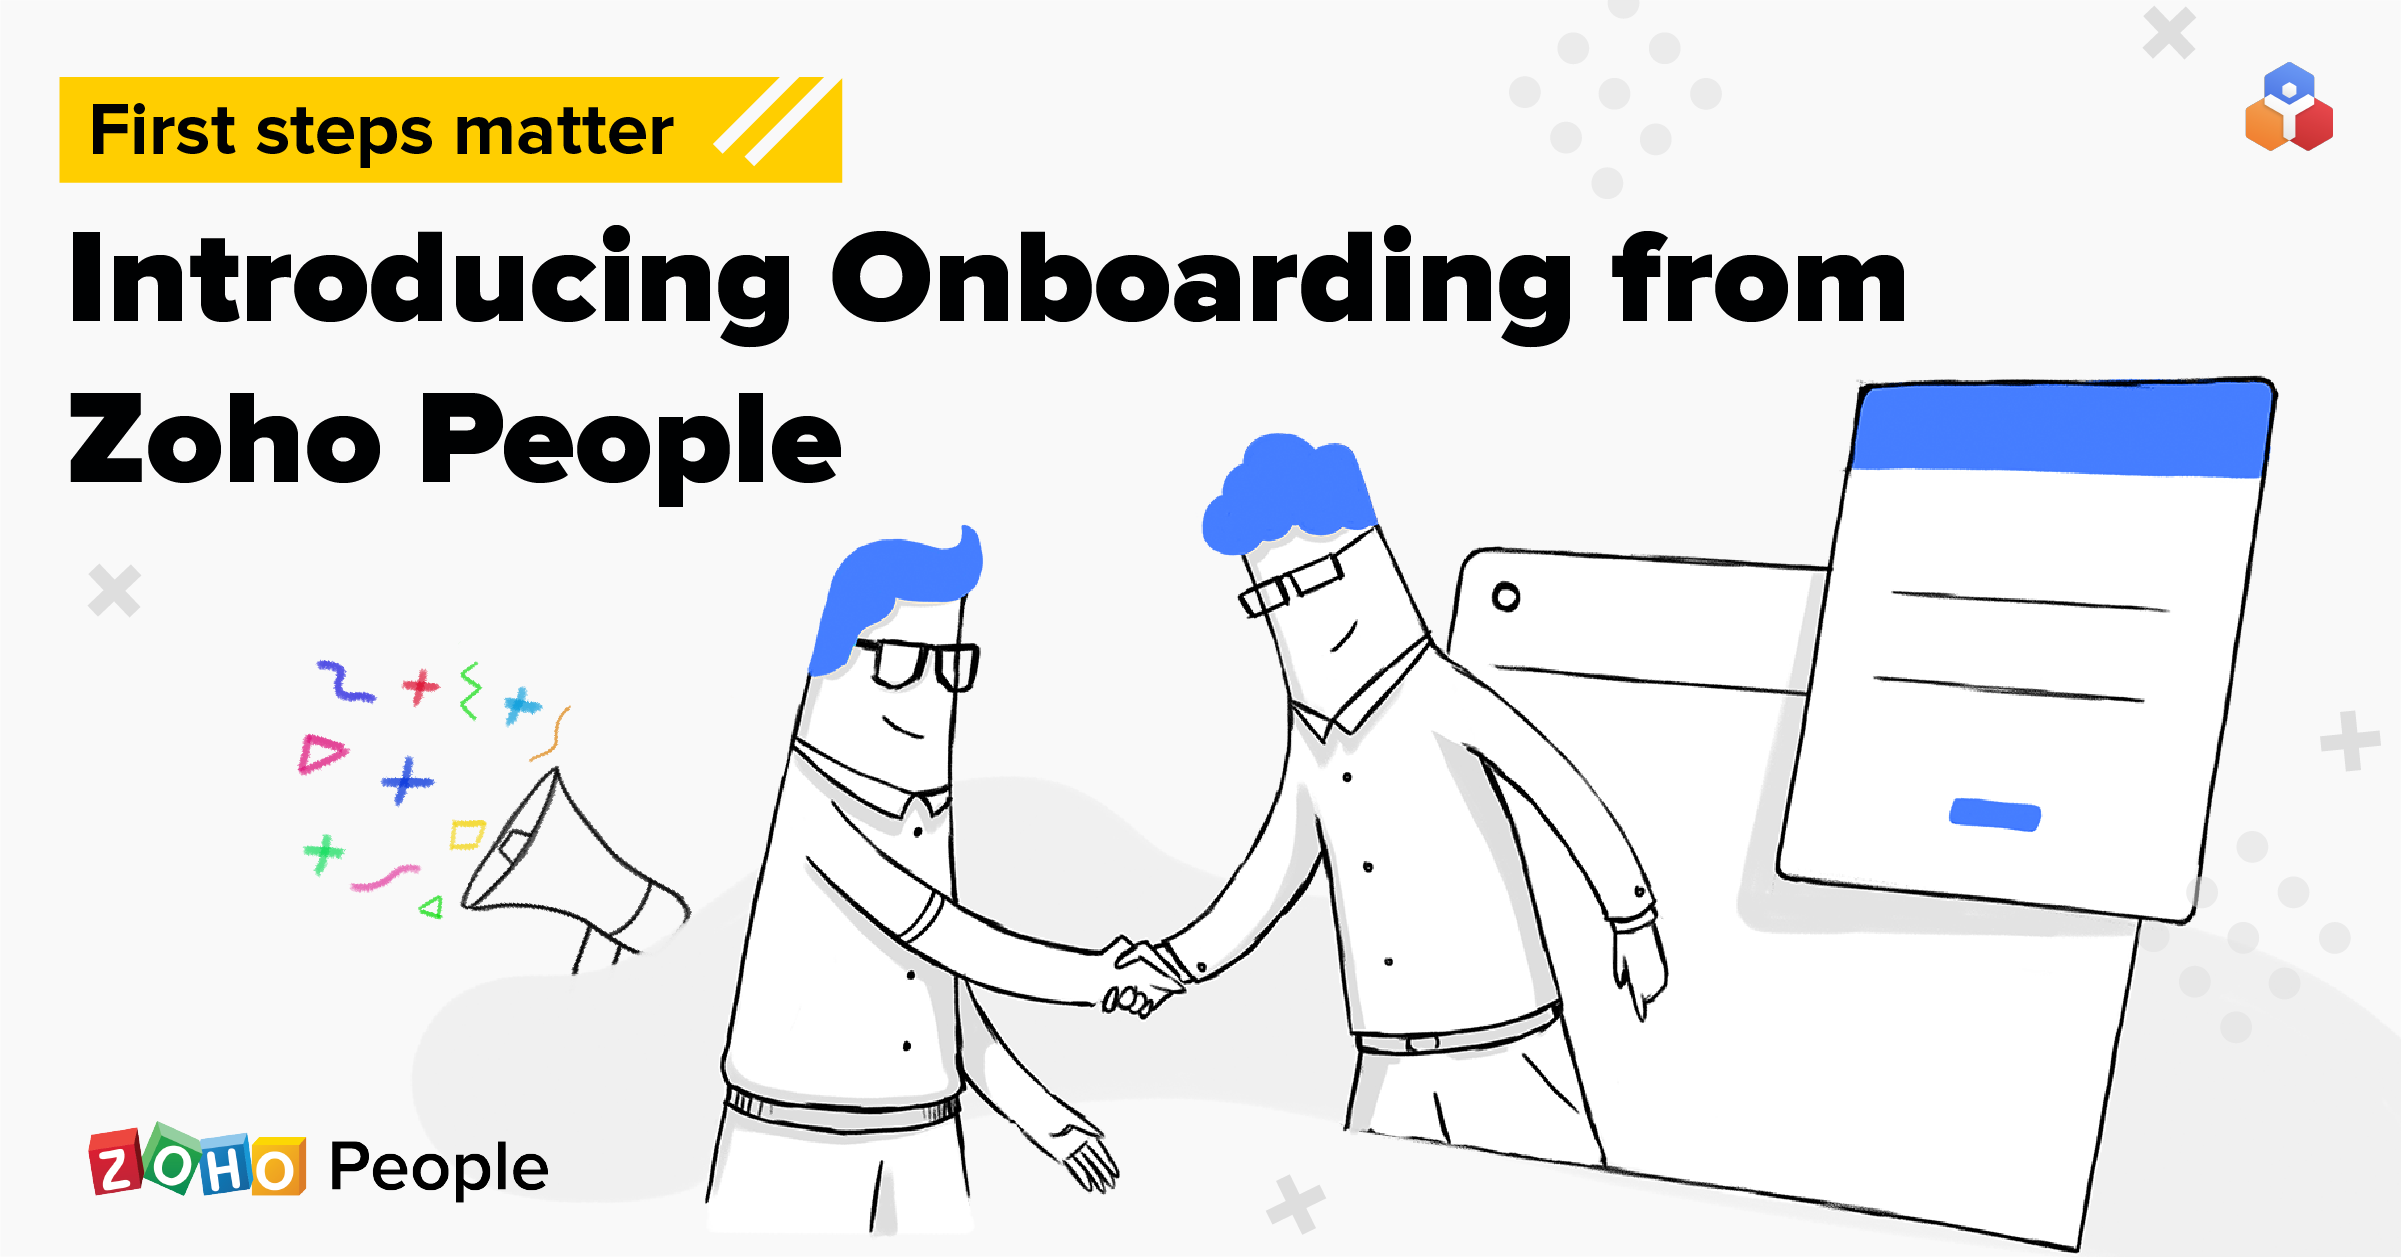 First steps matter. Introducing Onboarding from Zoho People